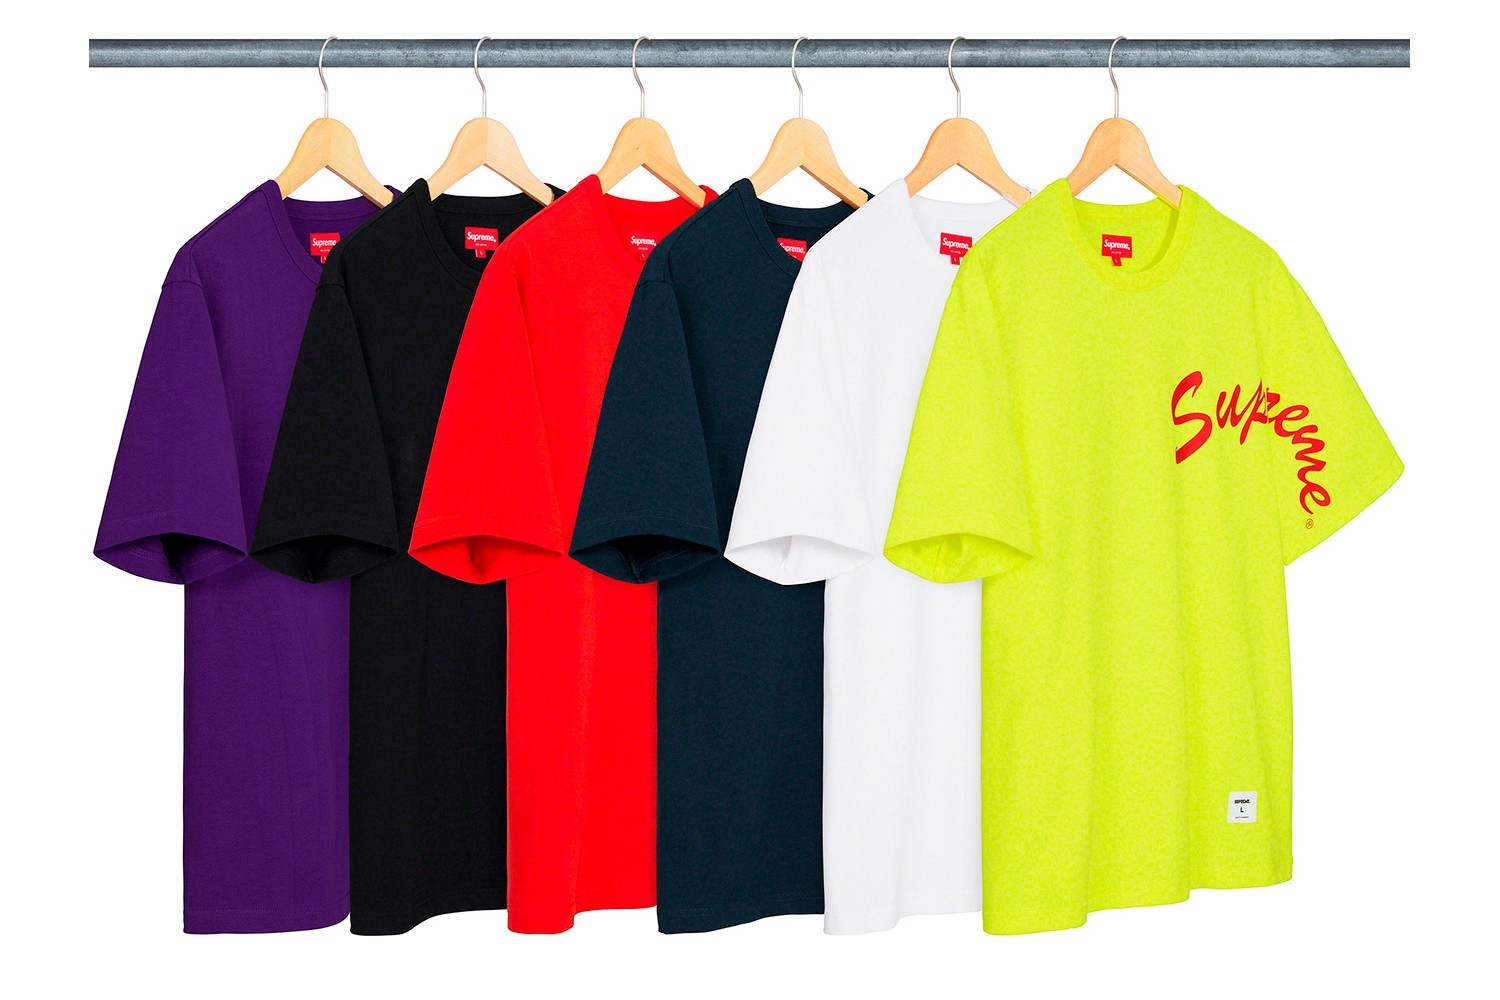 Supreme Fall Winter 2020 Week 9 Release Drop List Palace Skateboards Vistaprint Daidō Moriyama OAMC Richardson KITH BMW thisisneverthat tokyovitamin HYSTERIC GLAMOUR